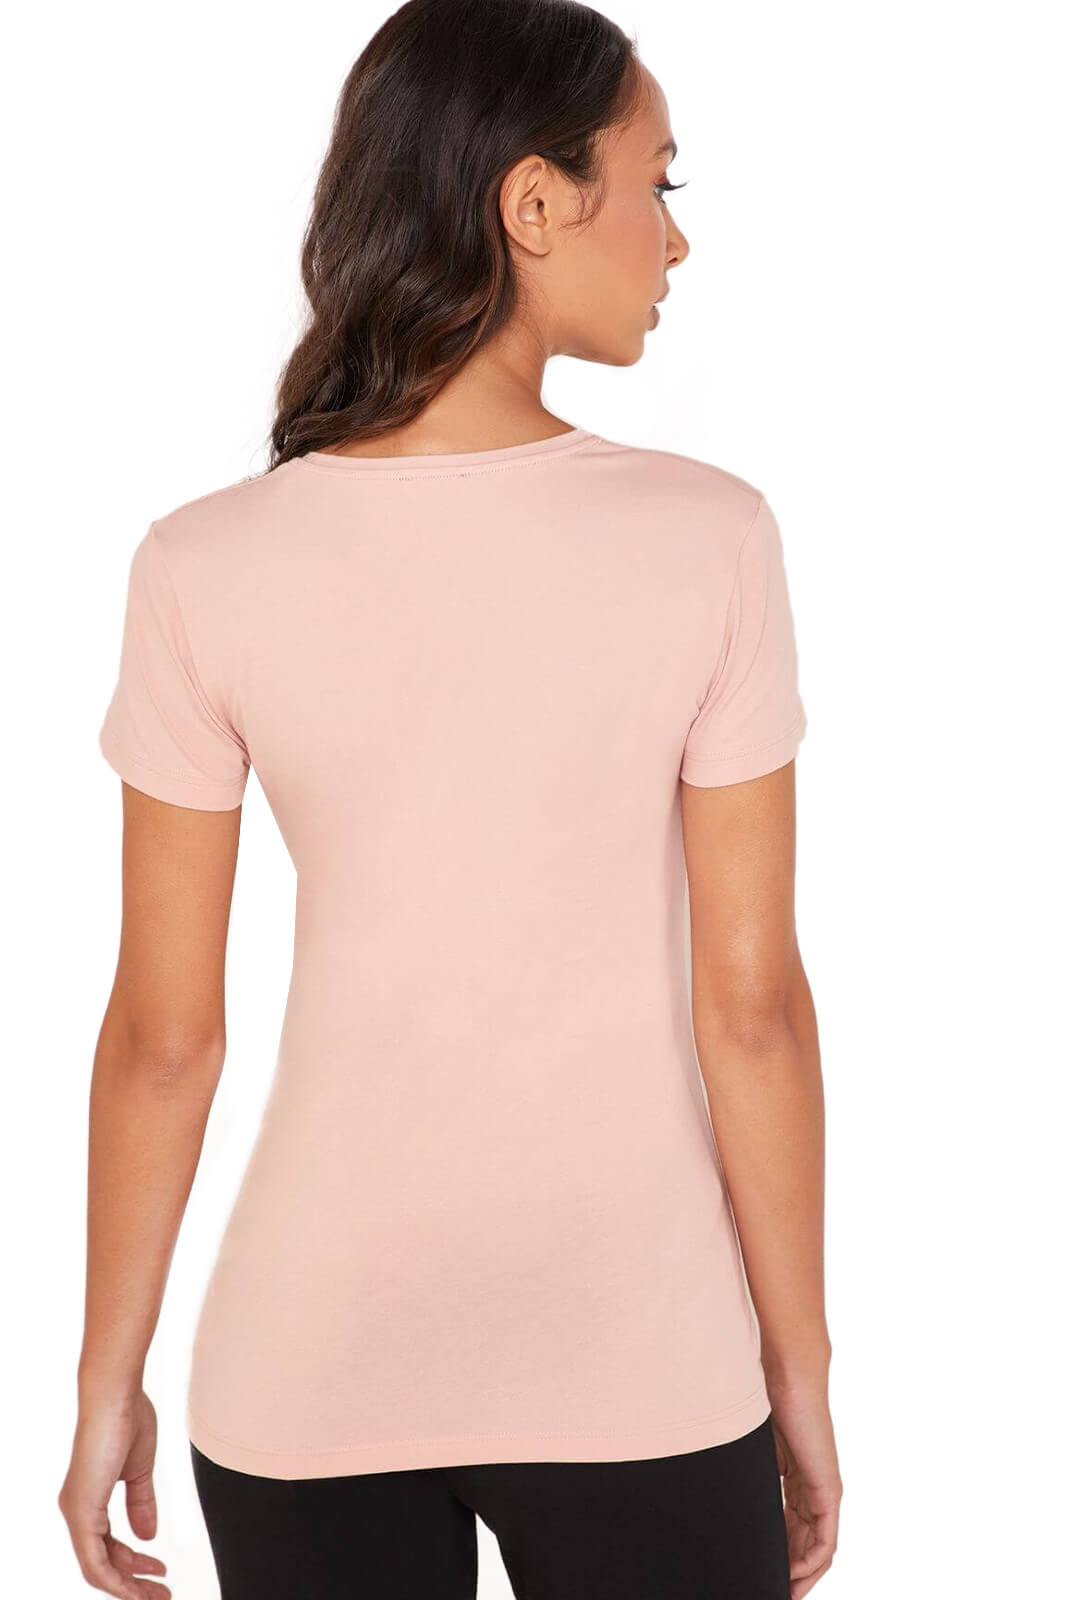 Tops & Tee shirts  Emporio armani 163321 9A317 13270 ROSE